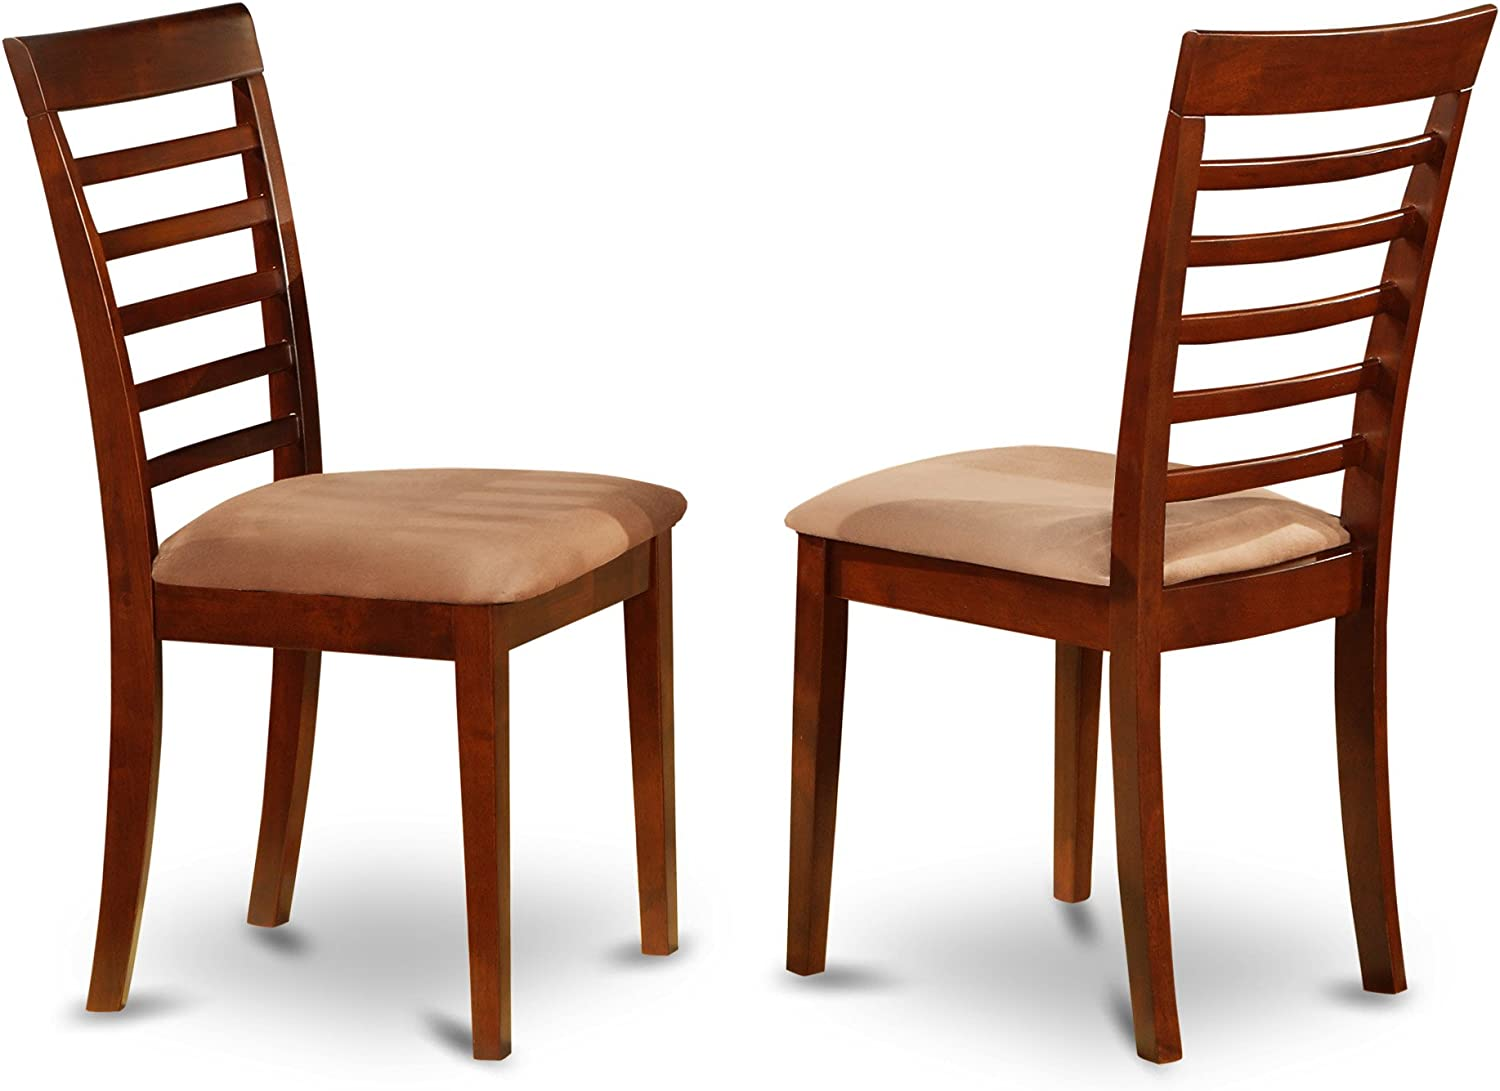 East West Furniture MLC-MAH-C Dining Chair Set with Padded Seat, Mahogany Finish, Set of 2